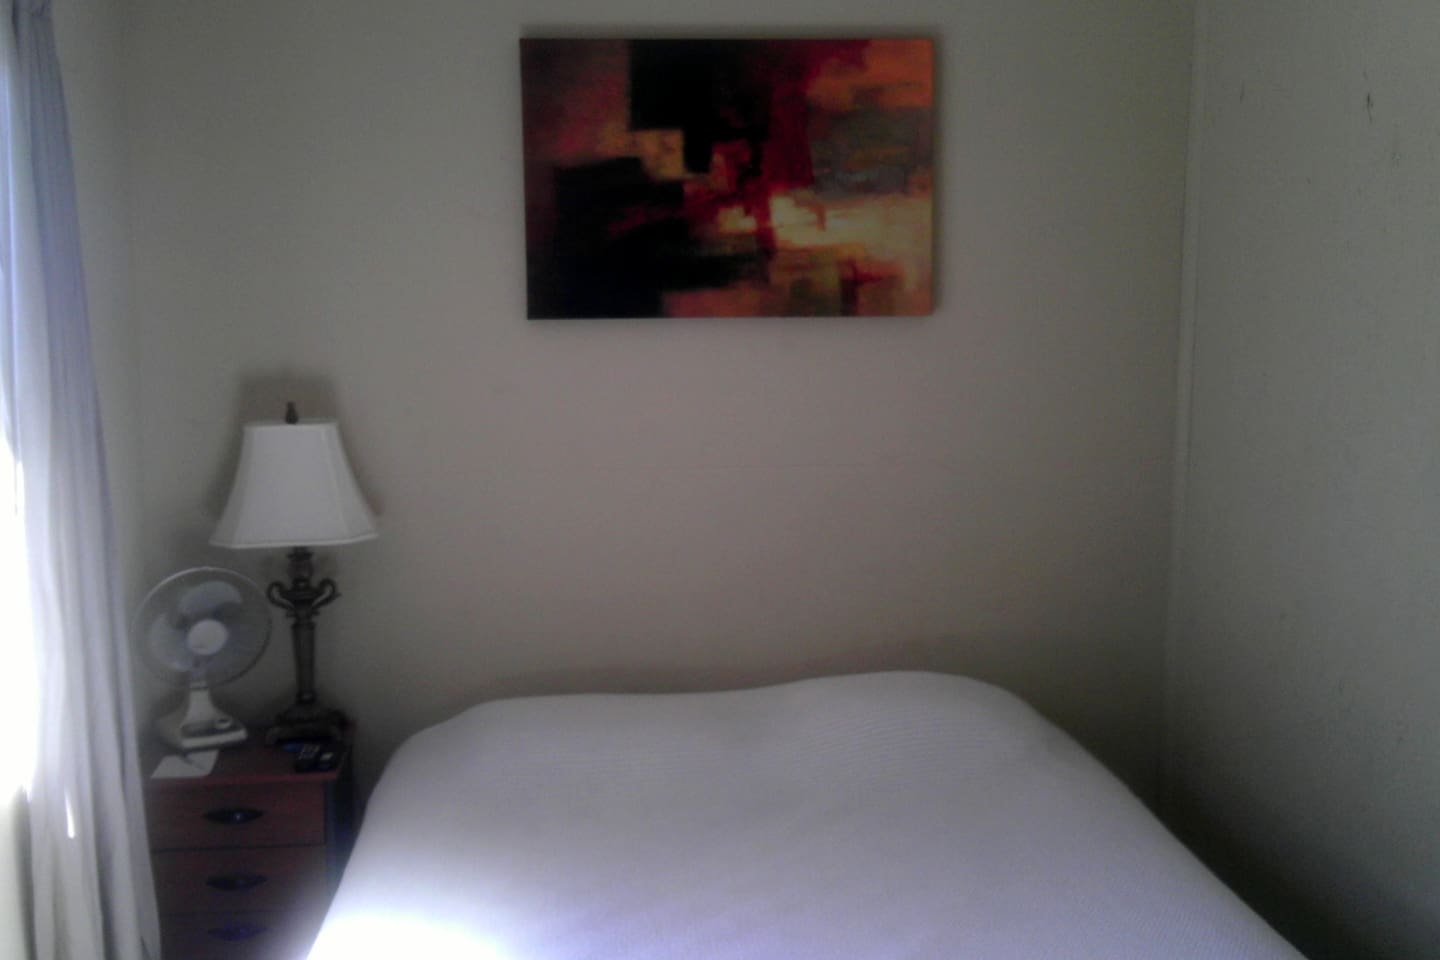 Basic simple room - comfortable bed. Good value.